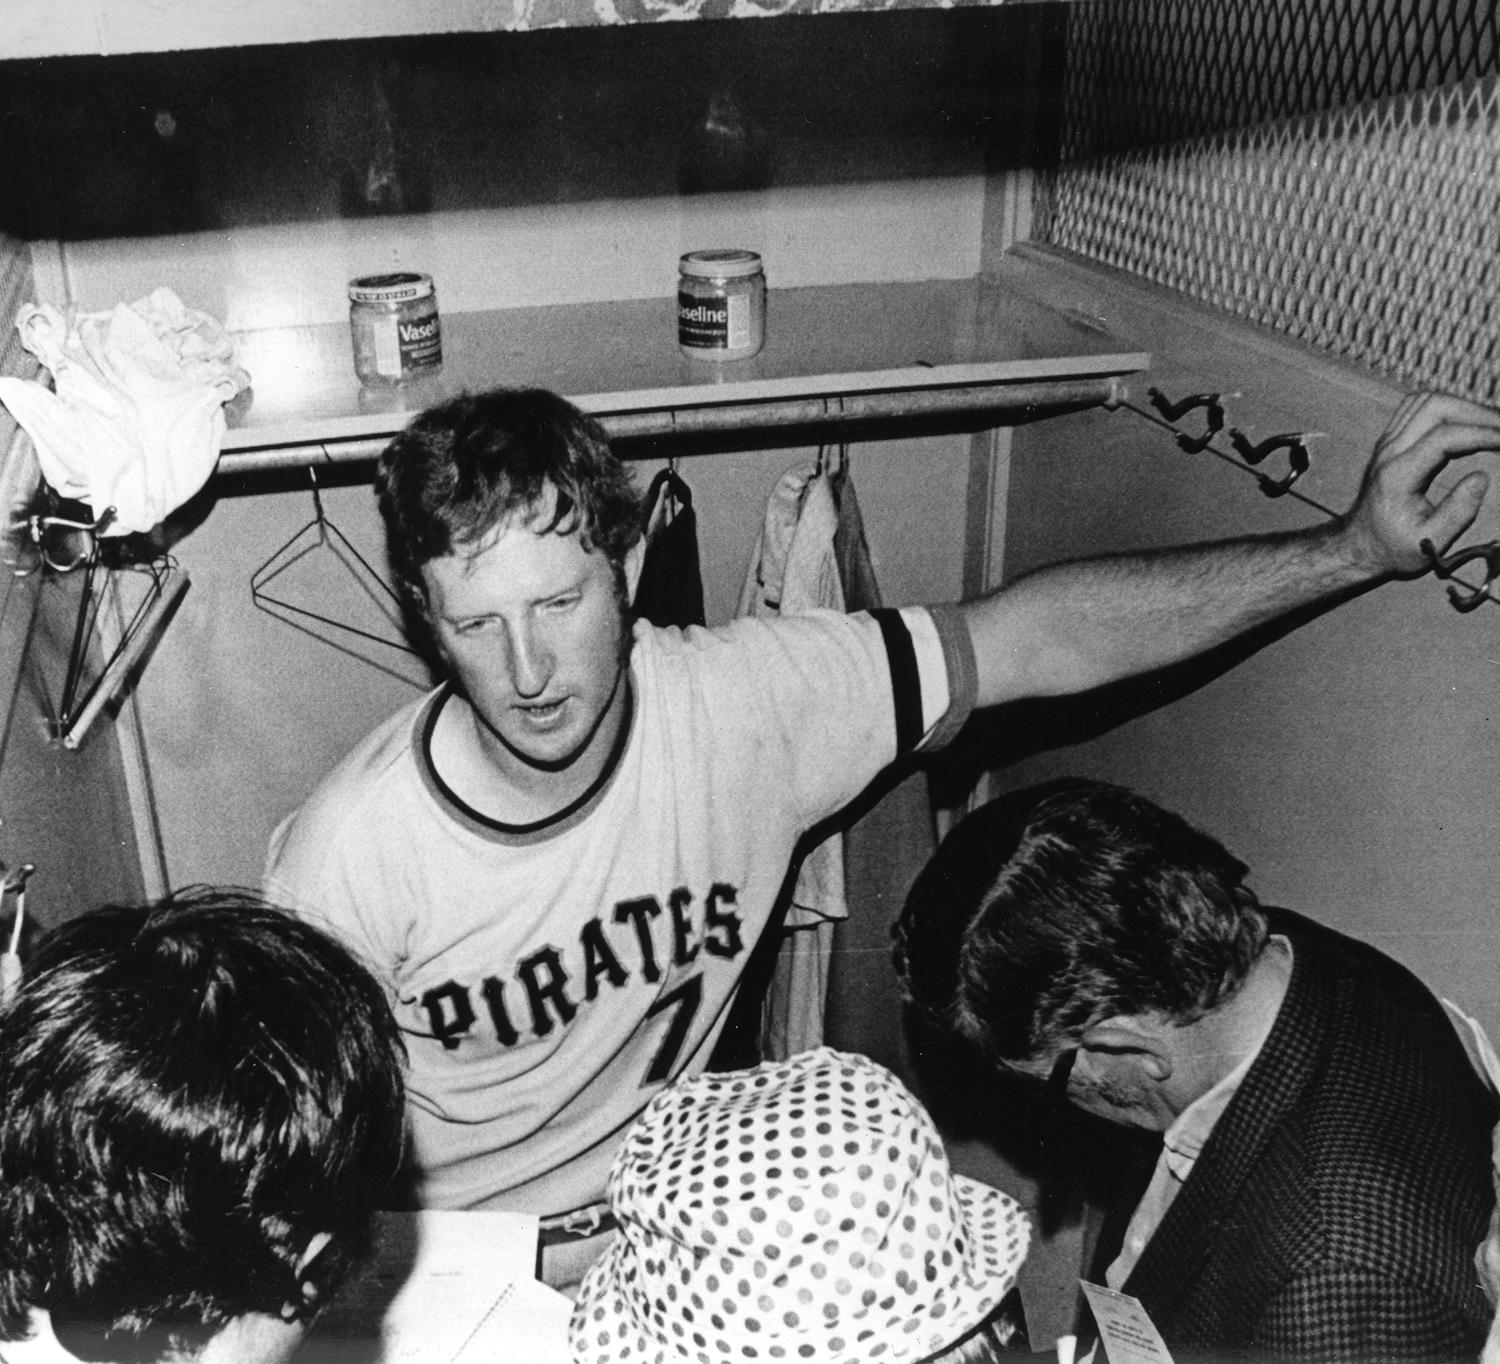 Bob Robertson speaks to reporters in front of his locker after a Pirates game. (National Baseball Hall of Fame and Museum)